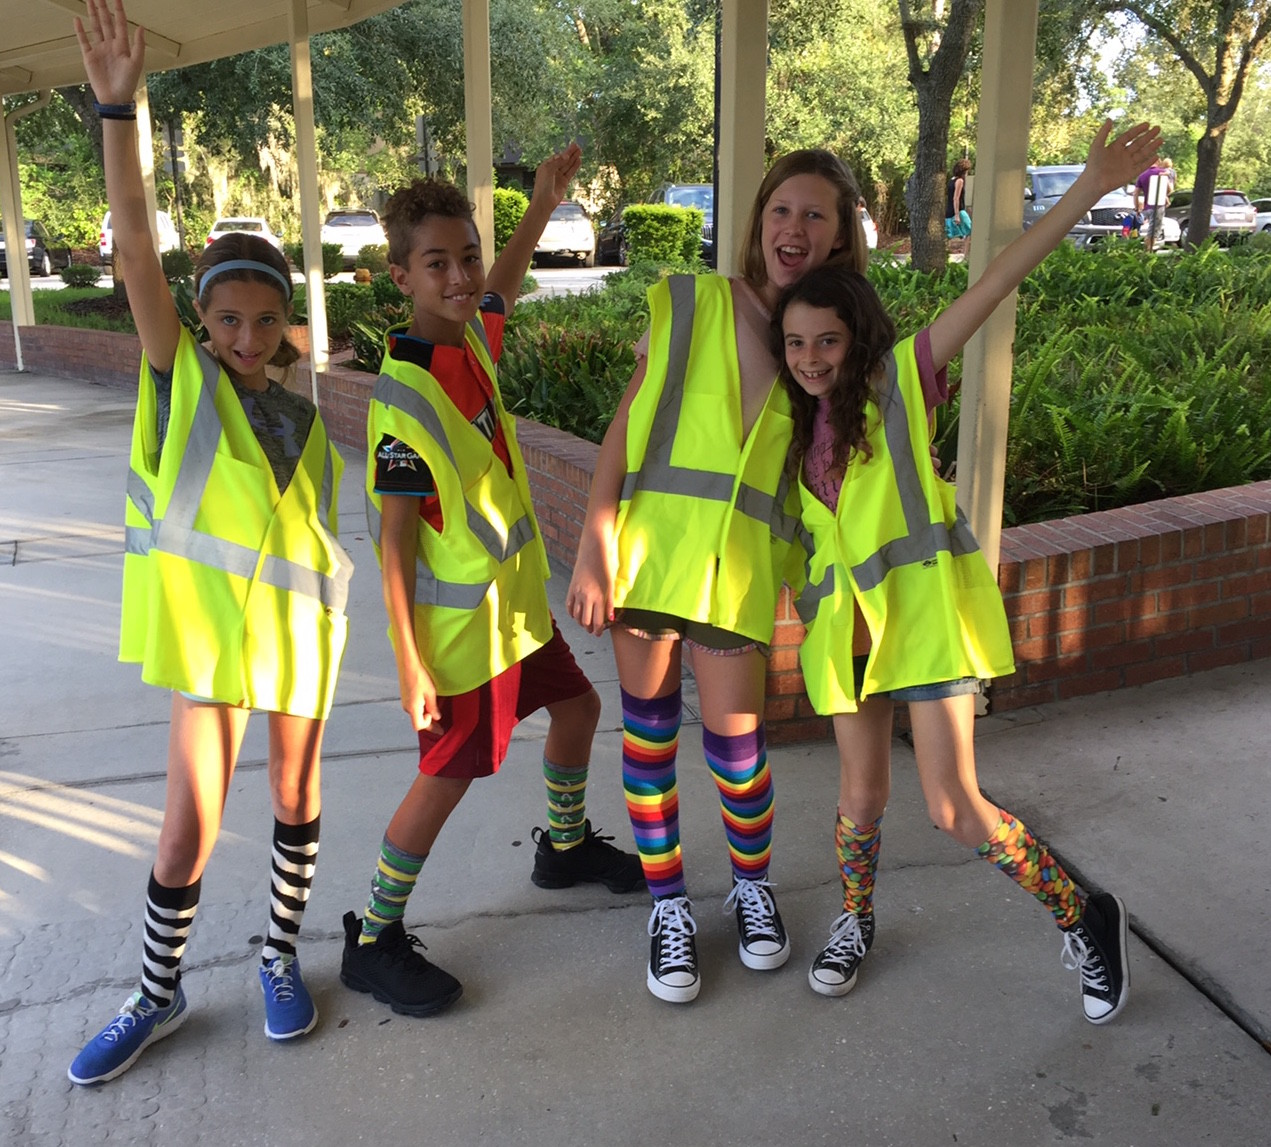 af30d1afd5a12 Jacksonville Country Day School students break dress code for Hurricane  Harvey | The Ponte Vedra Recorder